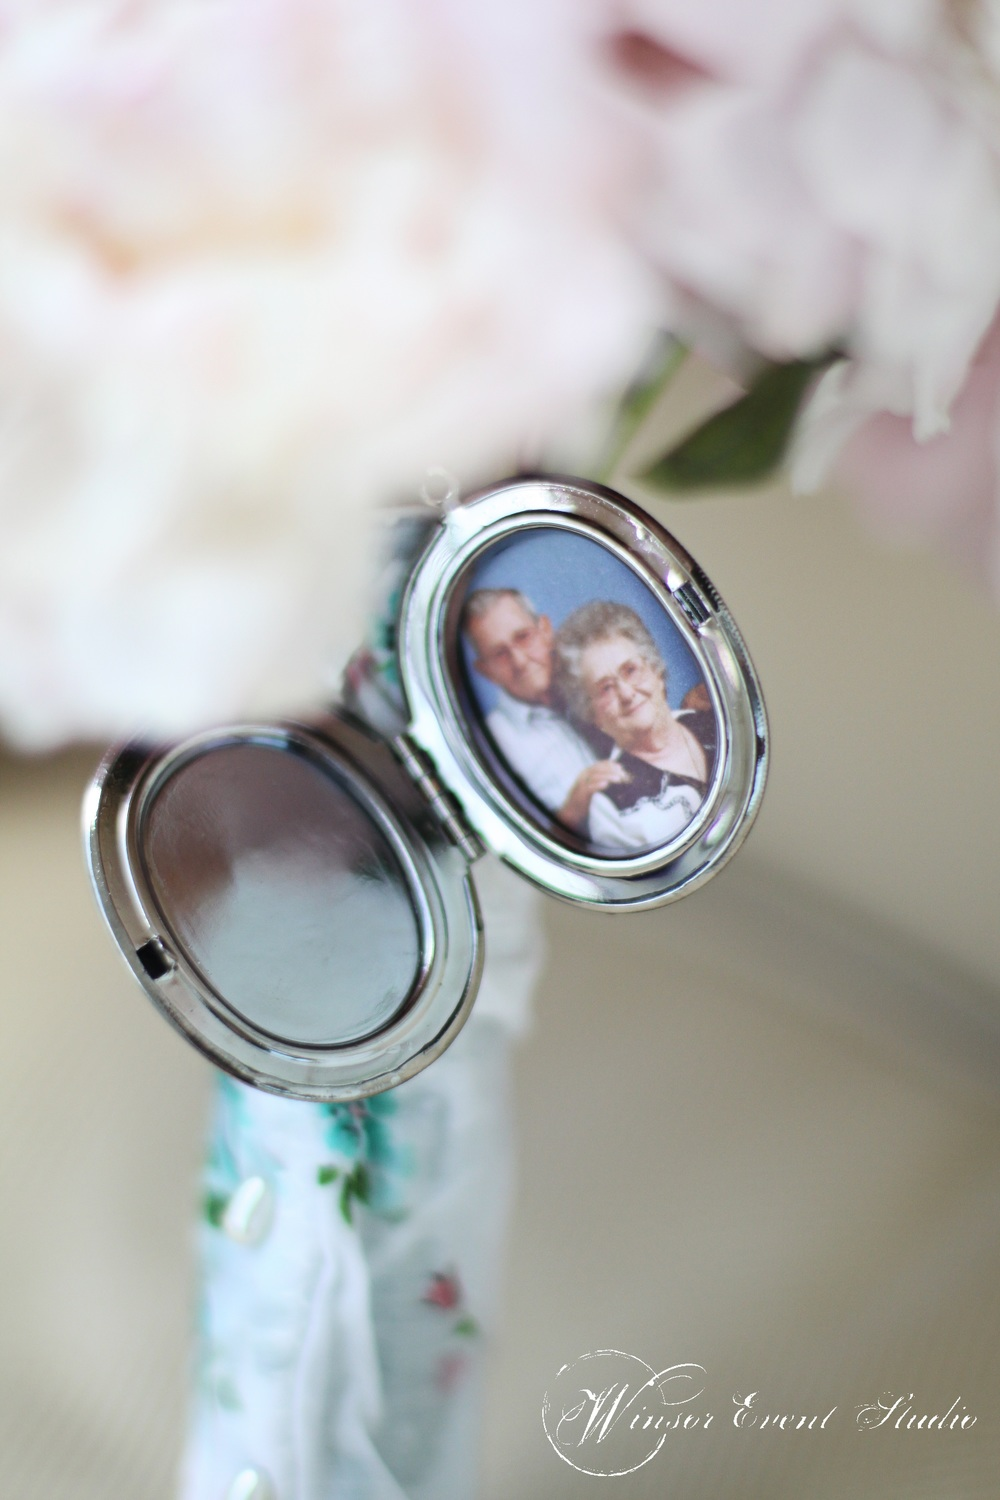 A vintage locket displayed a photo of the bride's late grandparents, who shared their wedding date